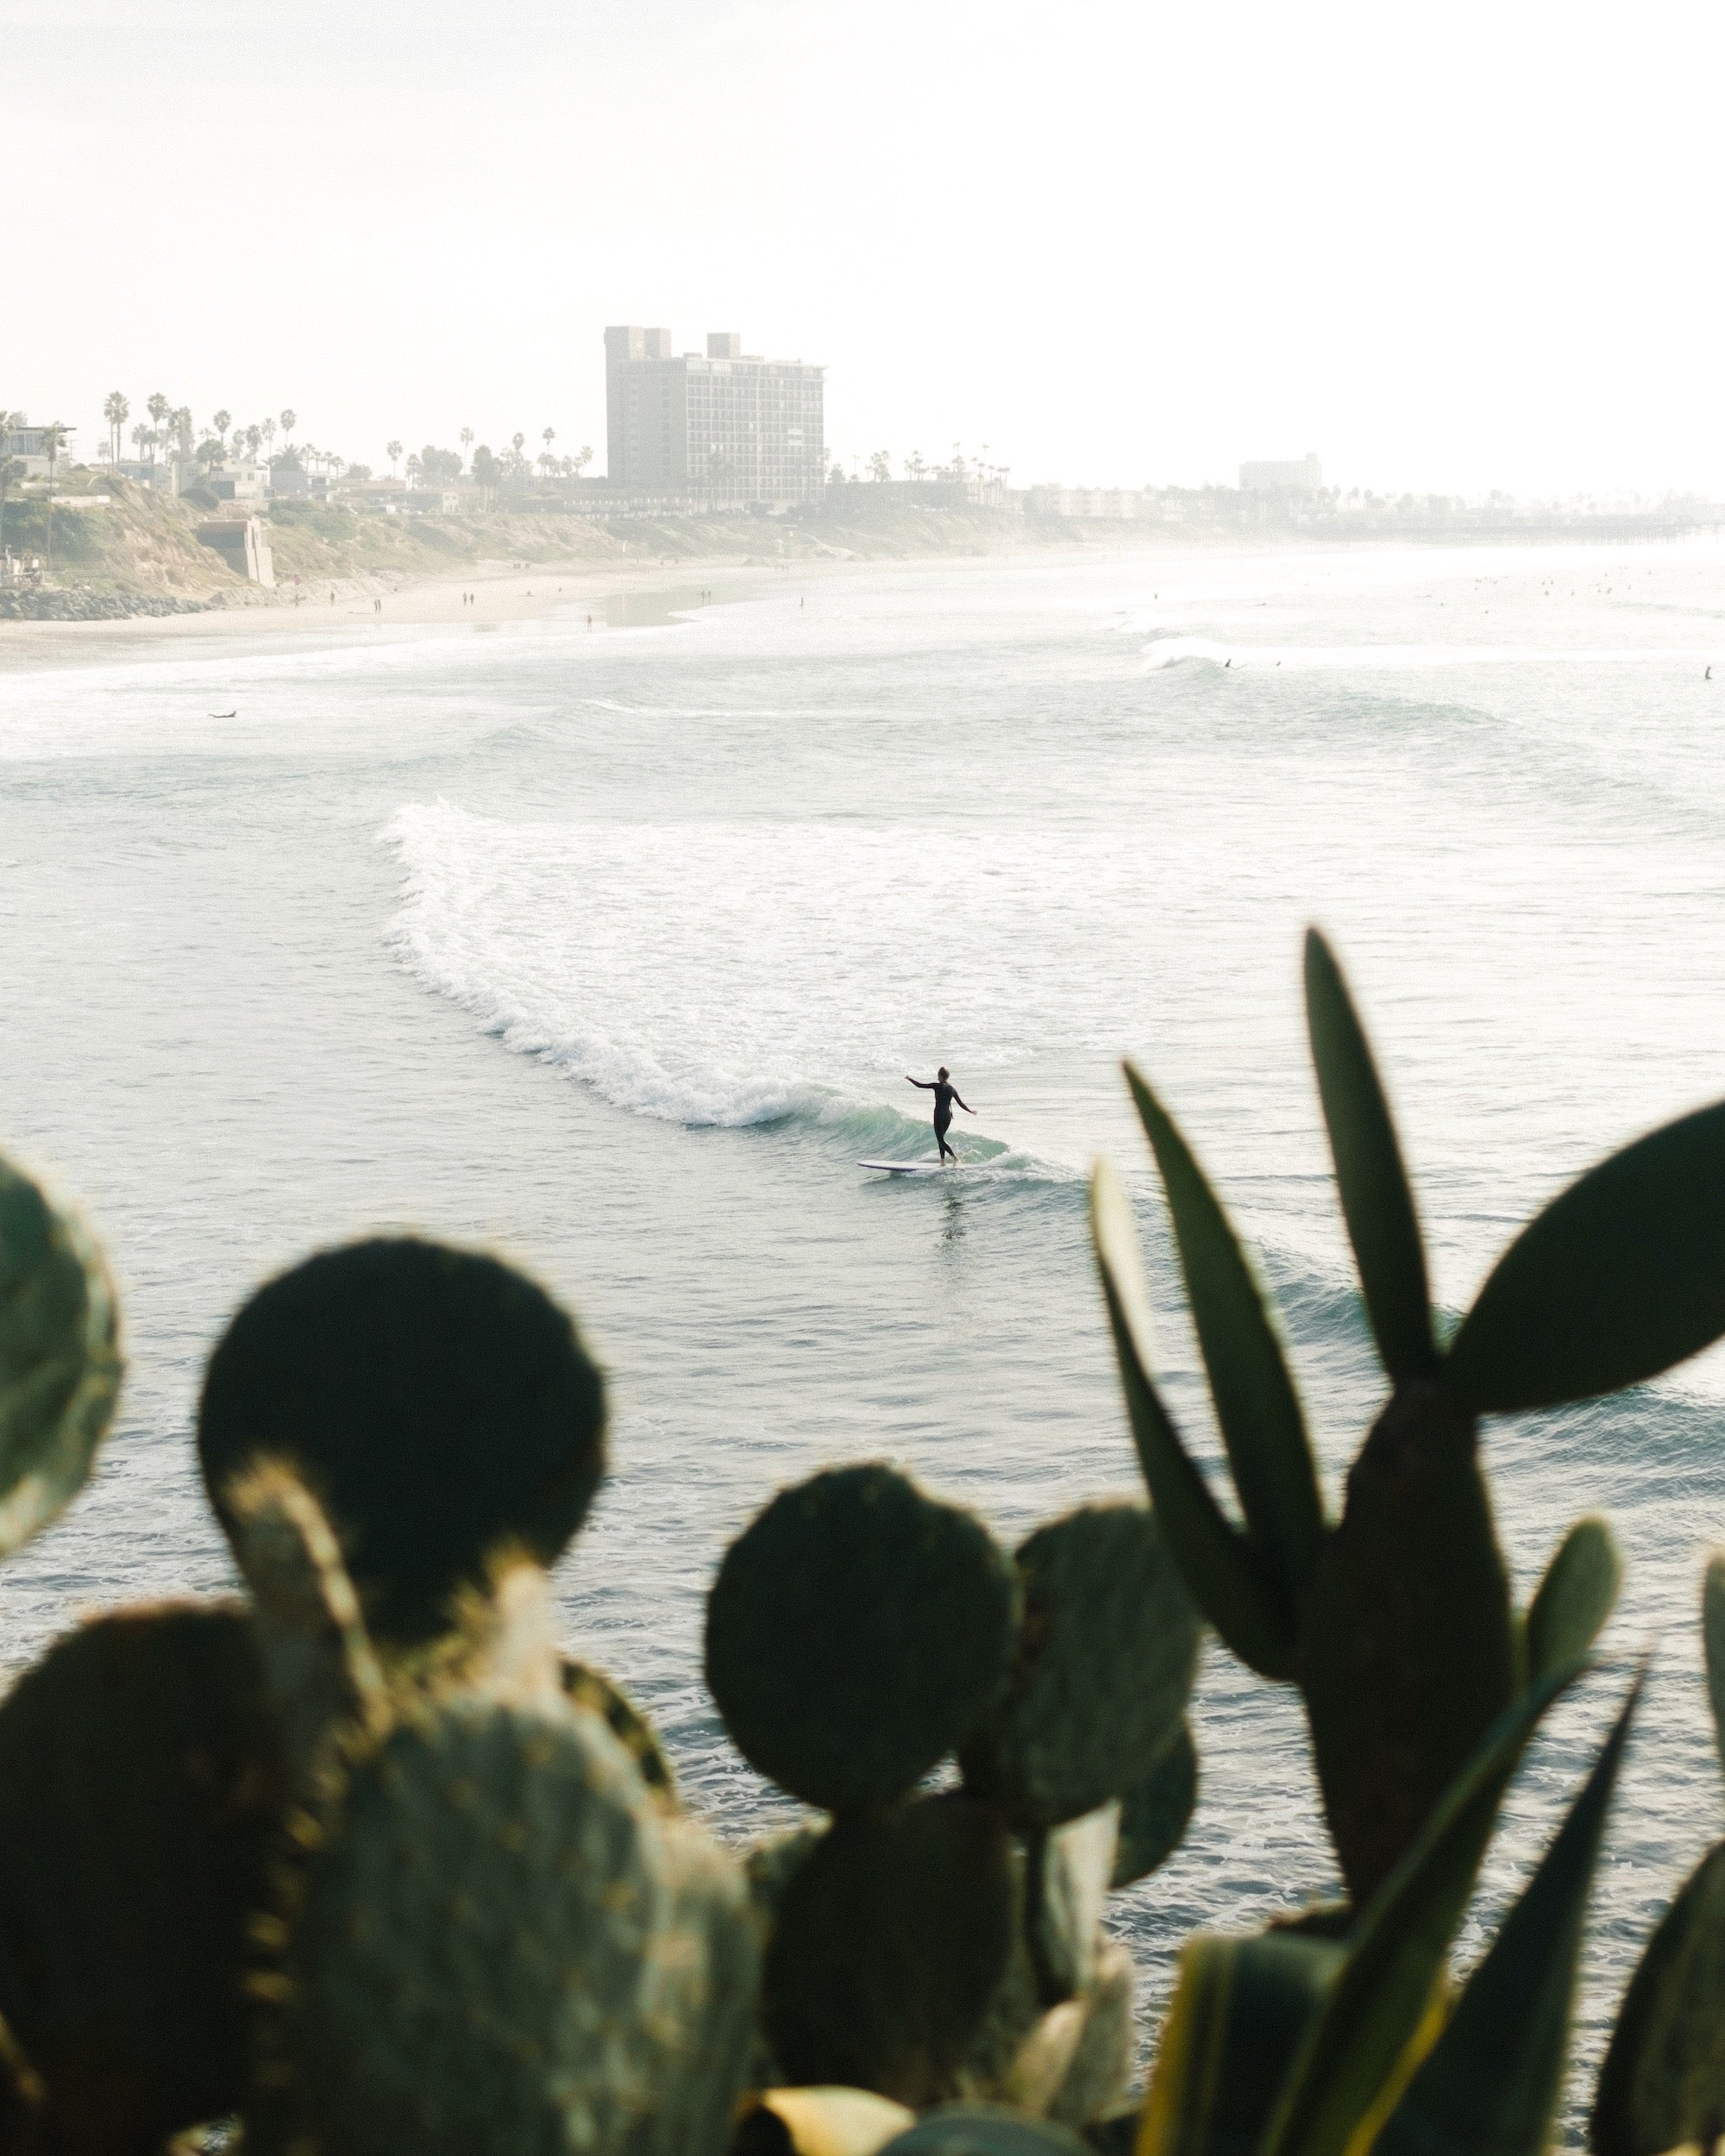 surfer riding a wave framed by cactus